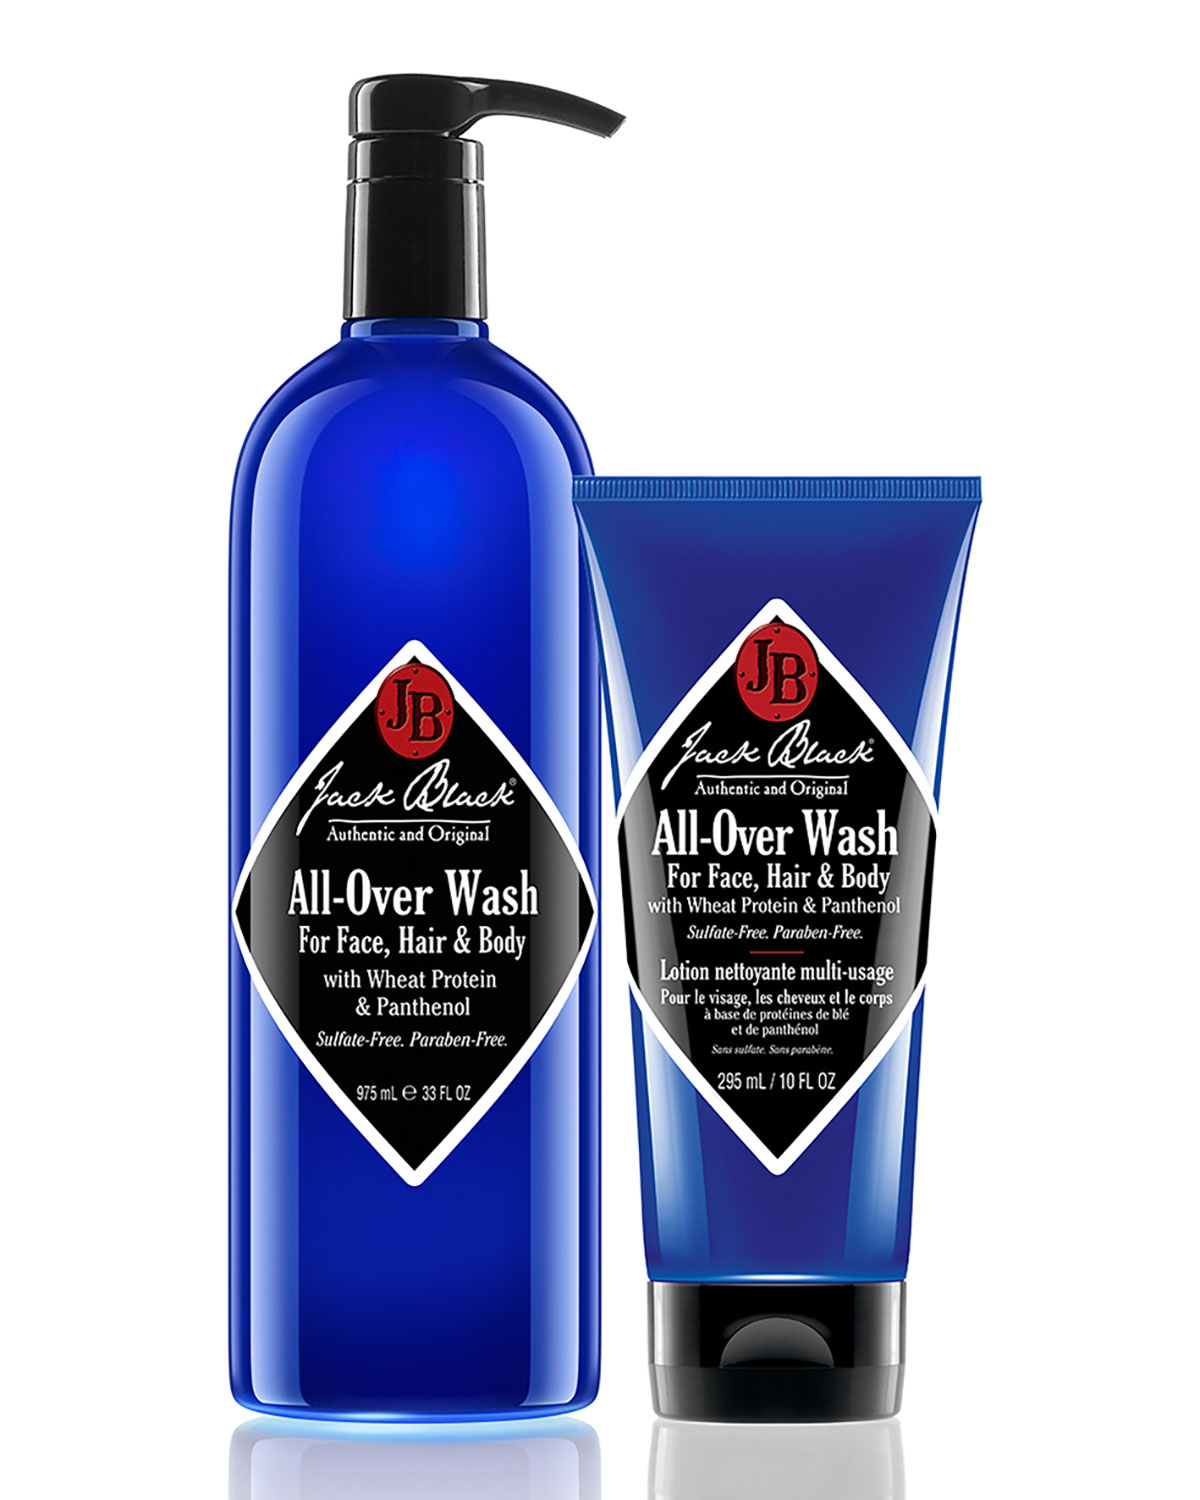 All-Over Wash For Face, Hair & Body 33 Oz/ 976 Ml, No Color